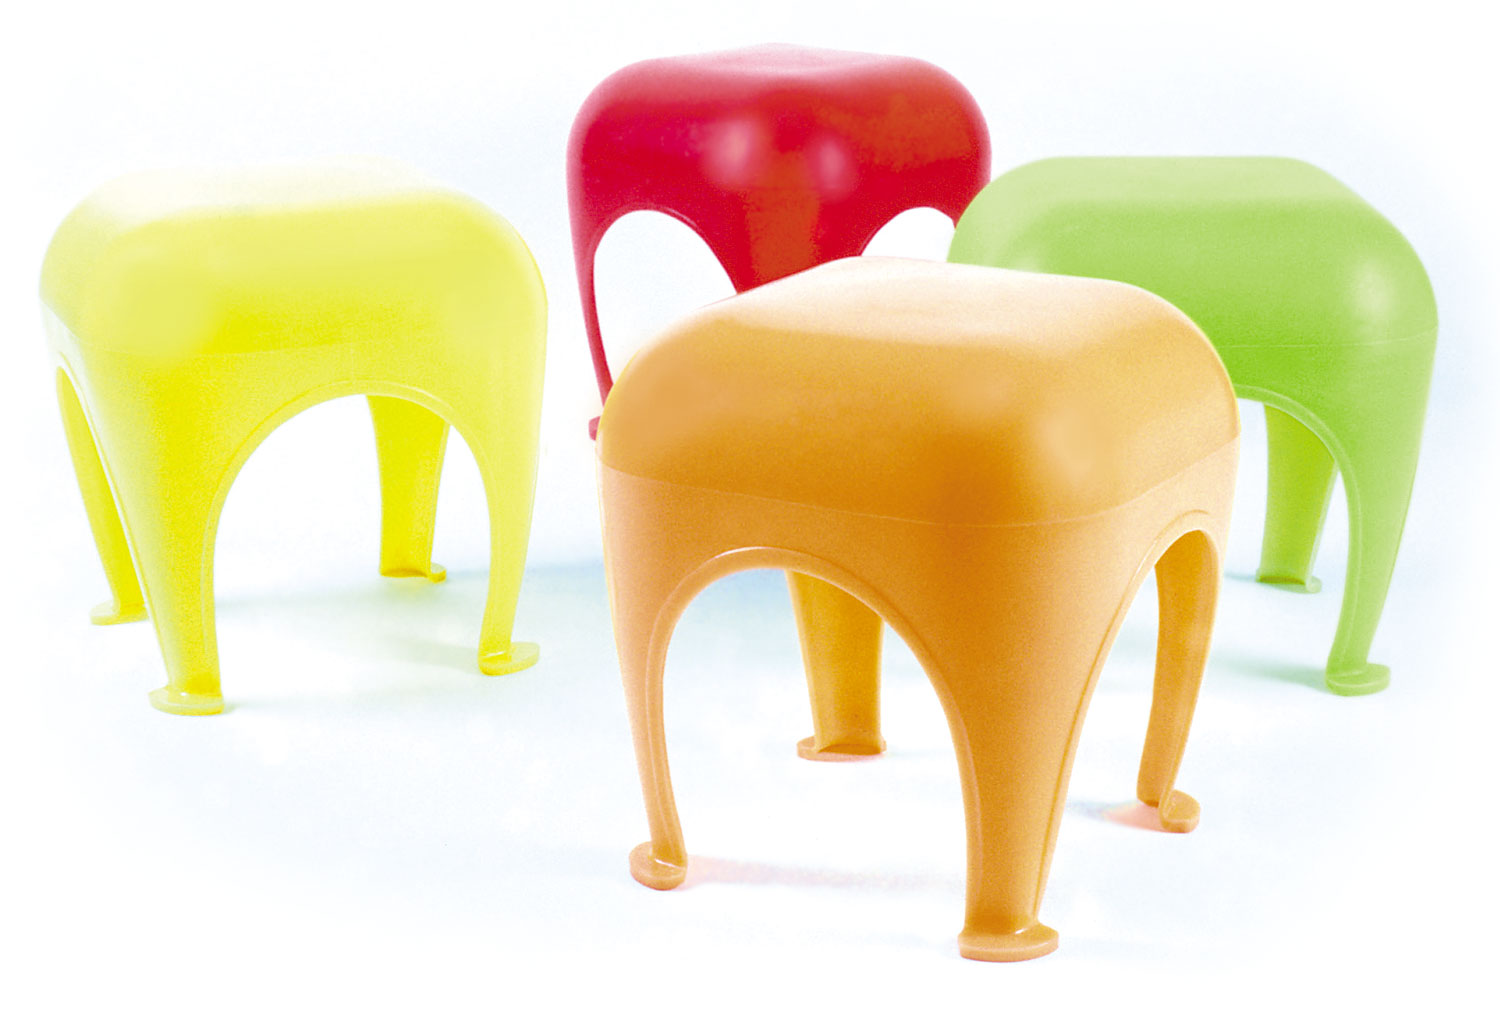 Le Gonflé stool made of recycled polypropylene